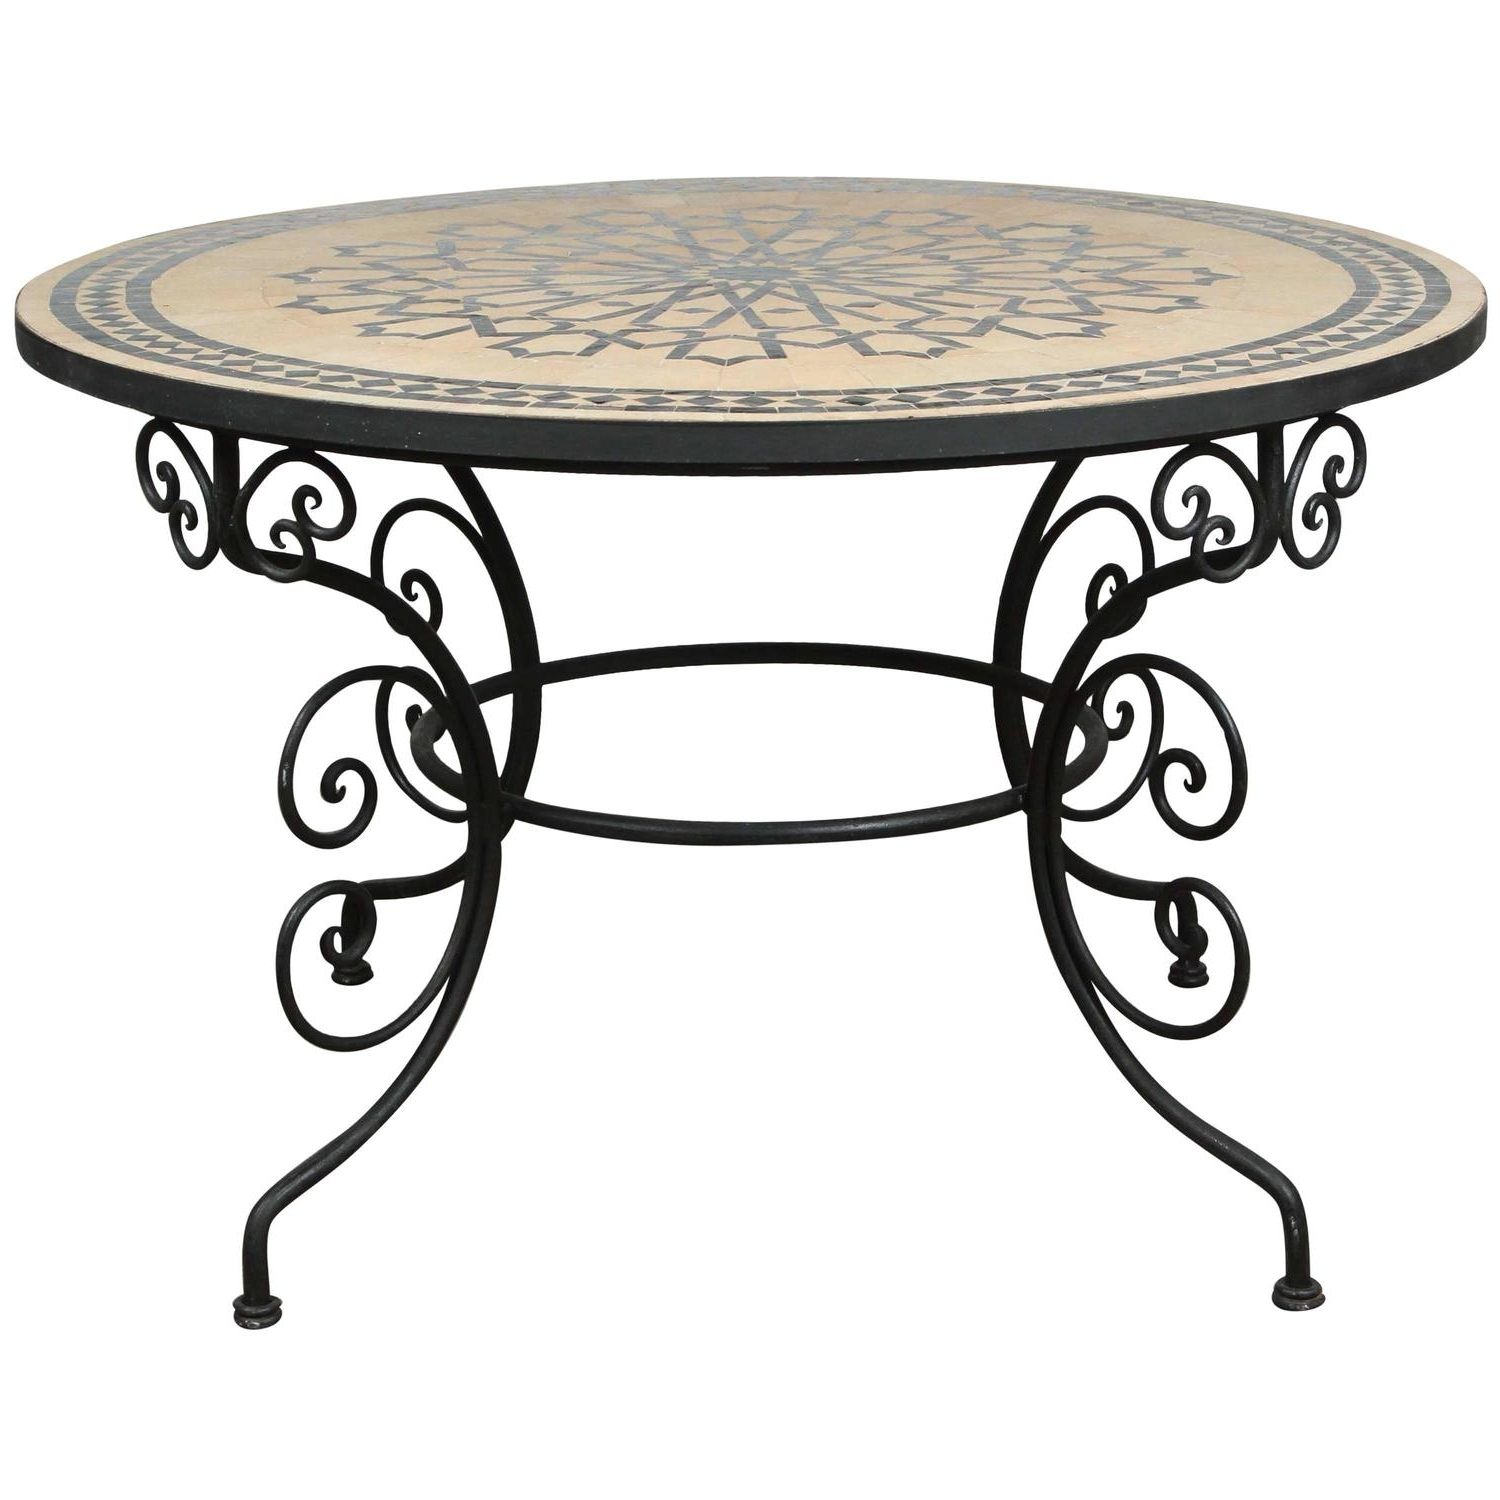 Recent Moroccan Outdoor Round Mosaic Tile Dining Table On Iron Base 47 In Throughout Mosaic Dining Tables For Sale (View 22 of 25)